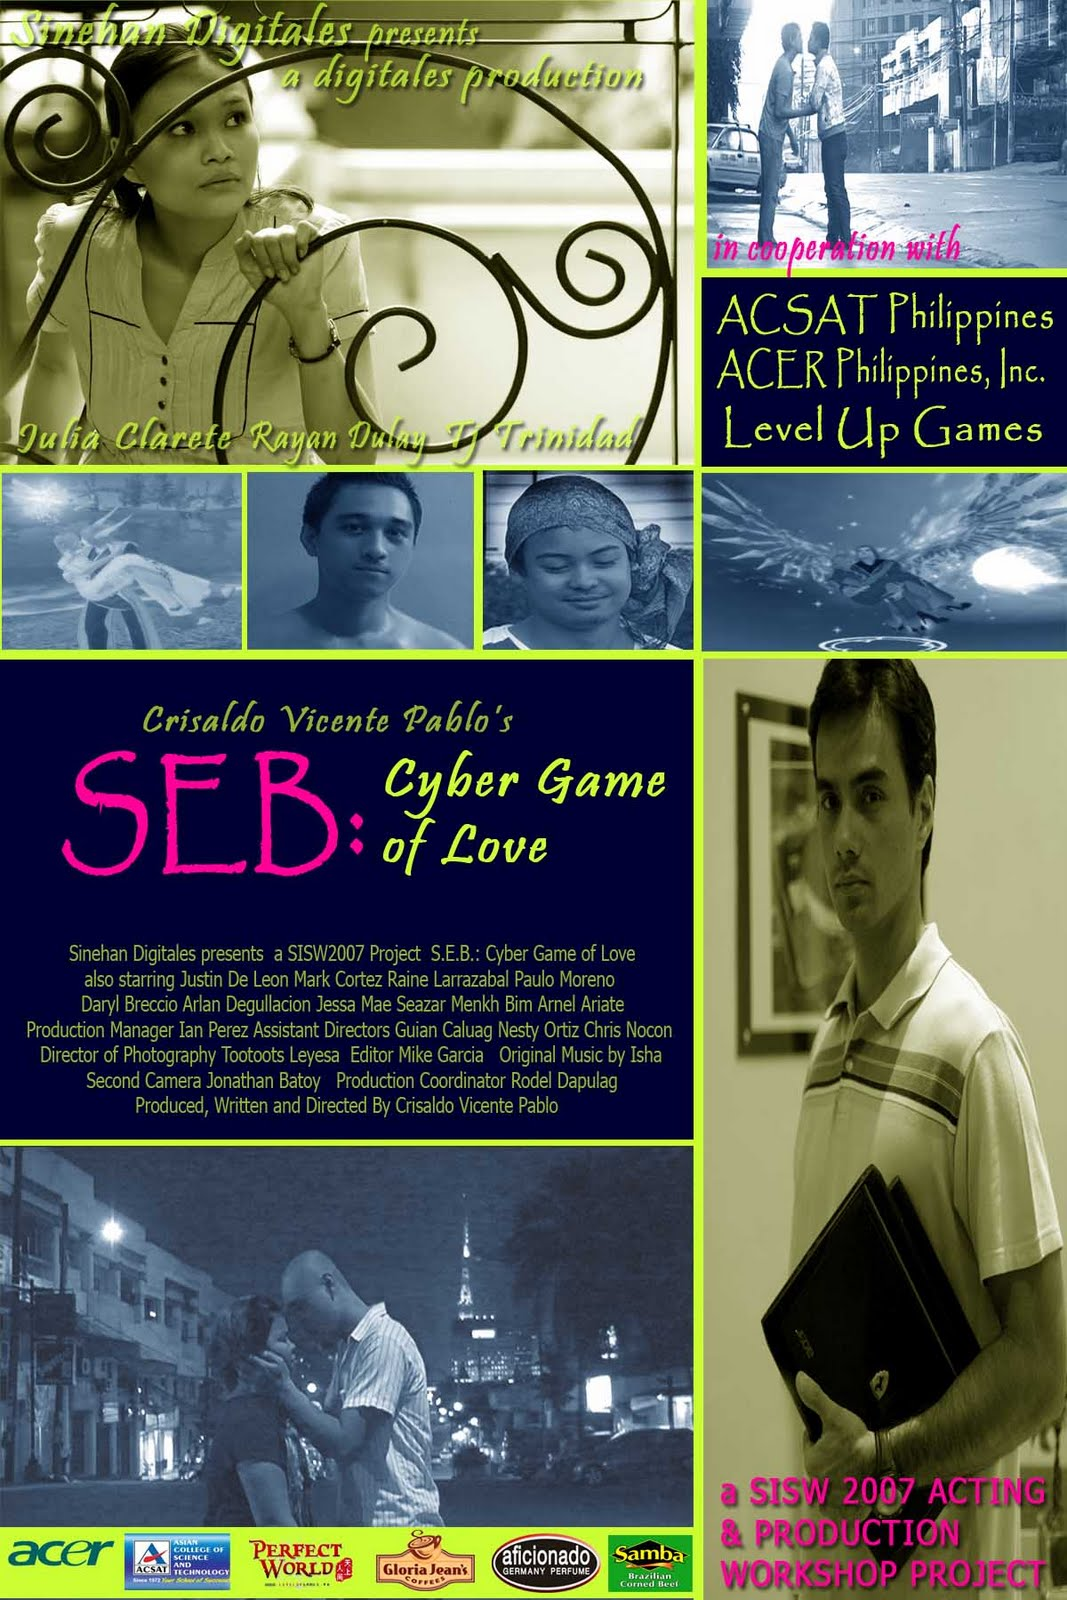 watch S.E.B Cyber Game of Love pinoy movie online streaming best pinoy horror movies